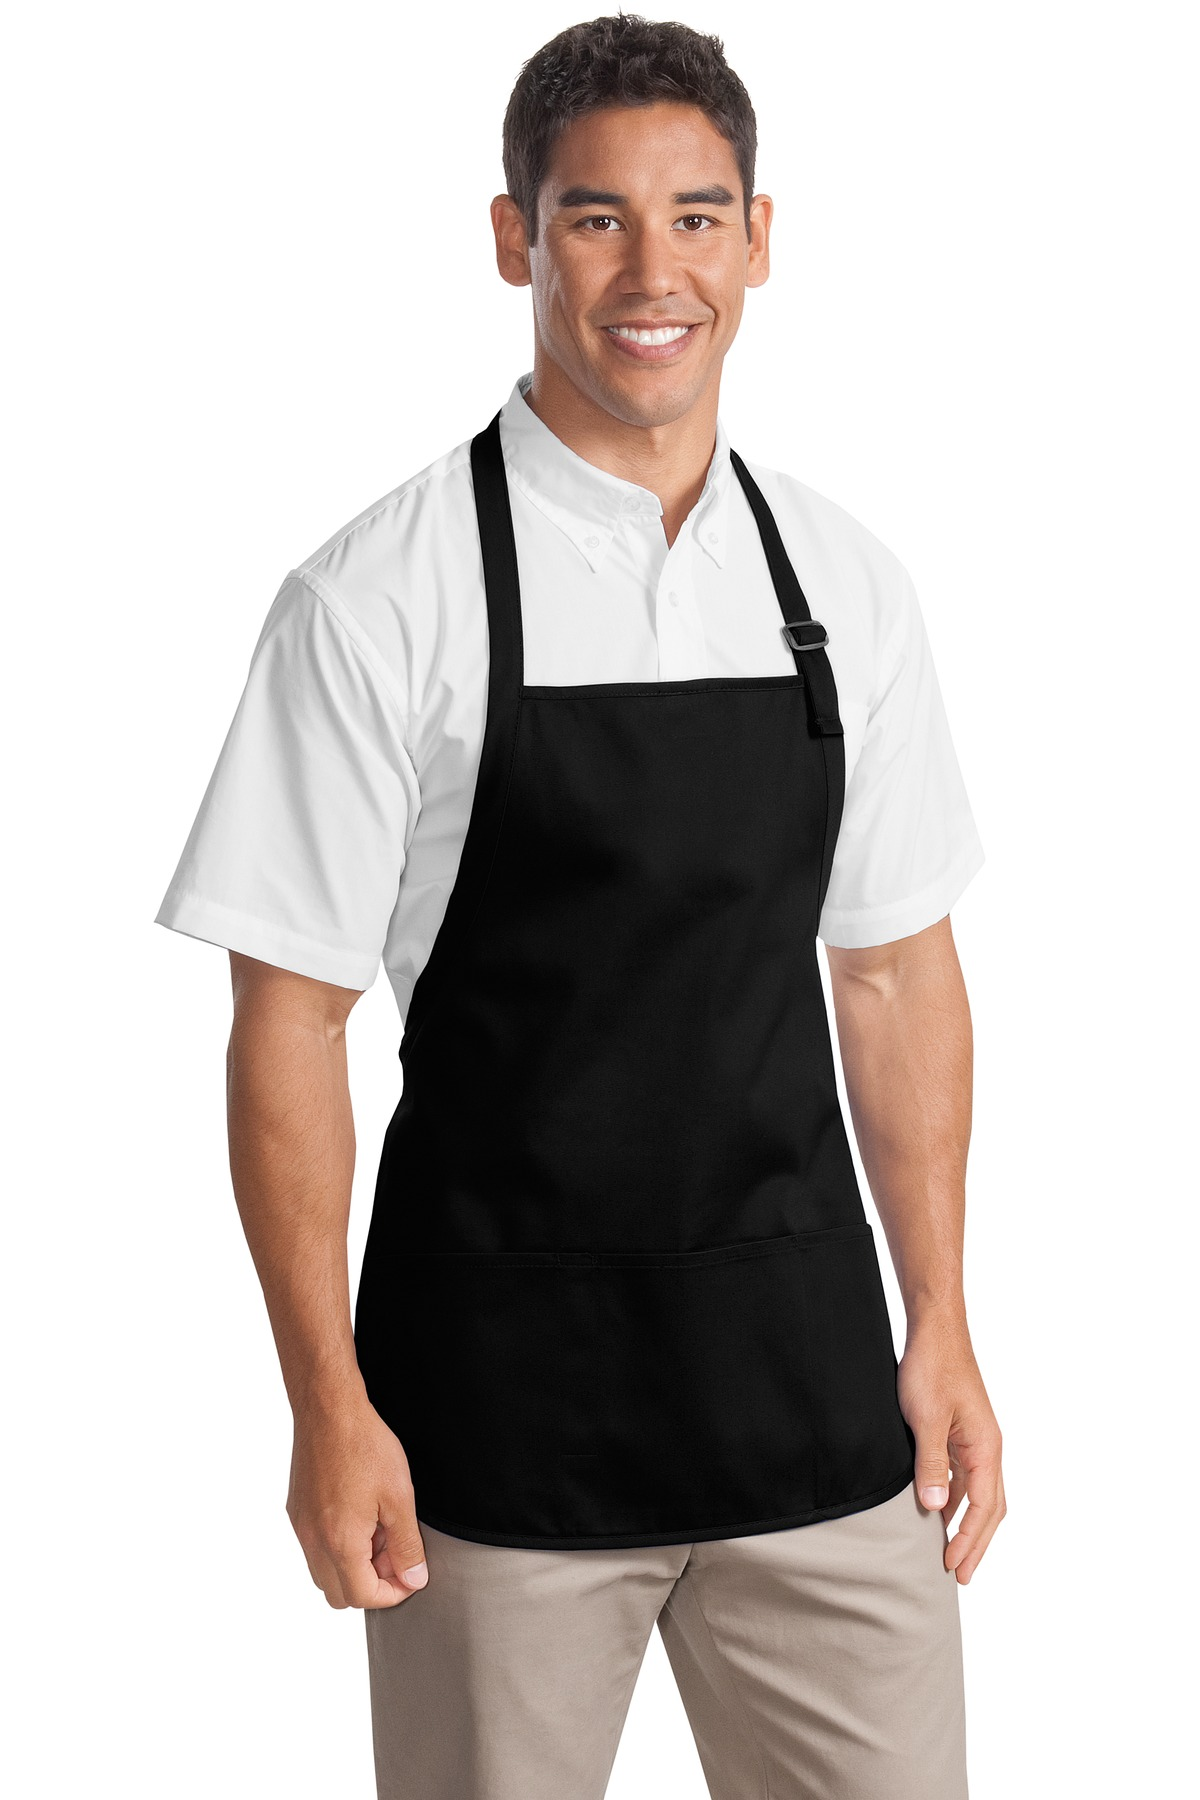 Port Authority ®  Medium-Length Apron with Pouch Pockets.  A510 - Black